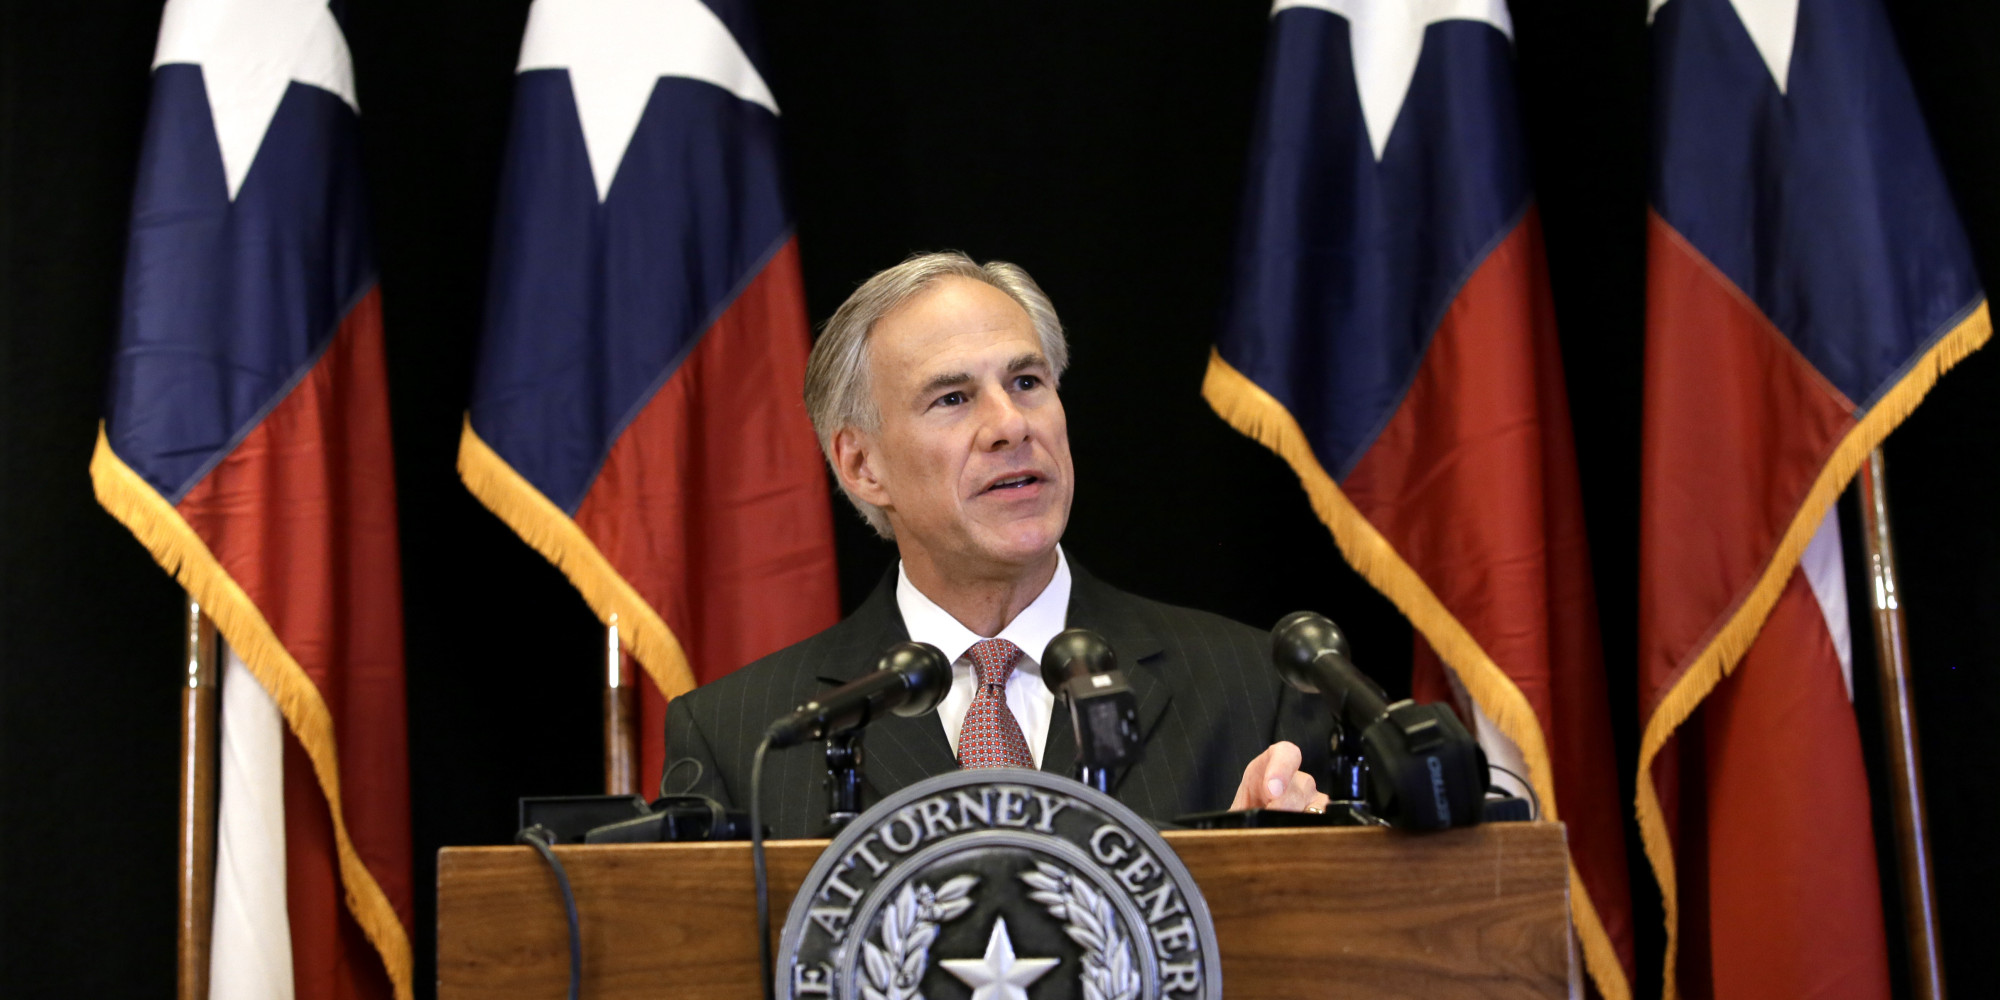 'Messing with the Constitution'? The Left beat Texas Gov. Abbott to the punch